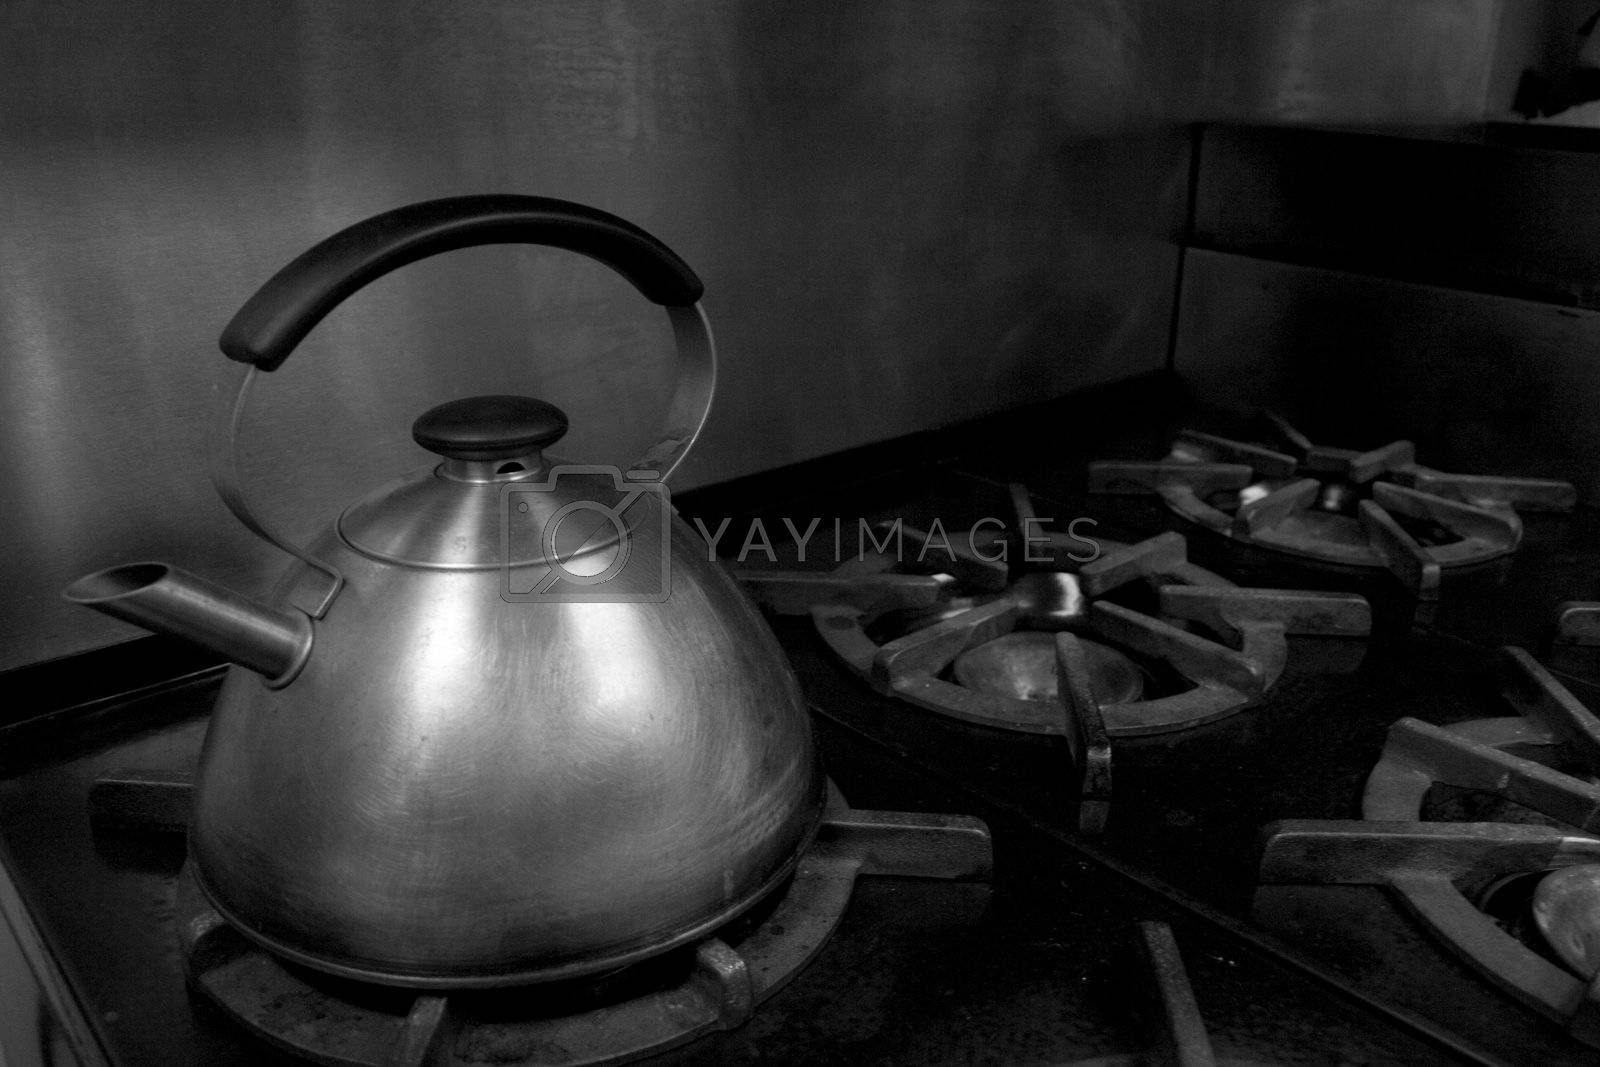 A water kettle on an old iron stovetop.